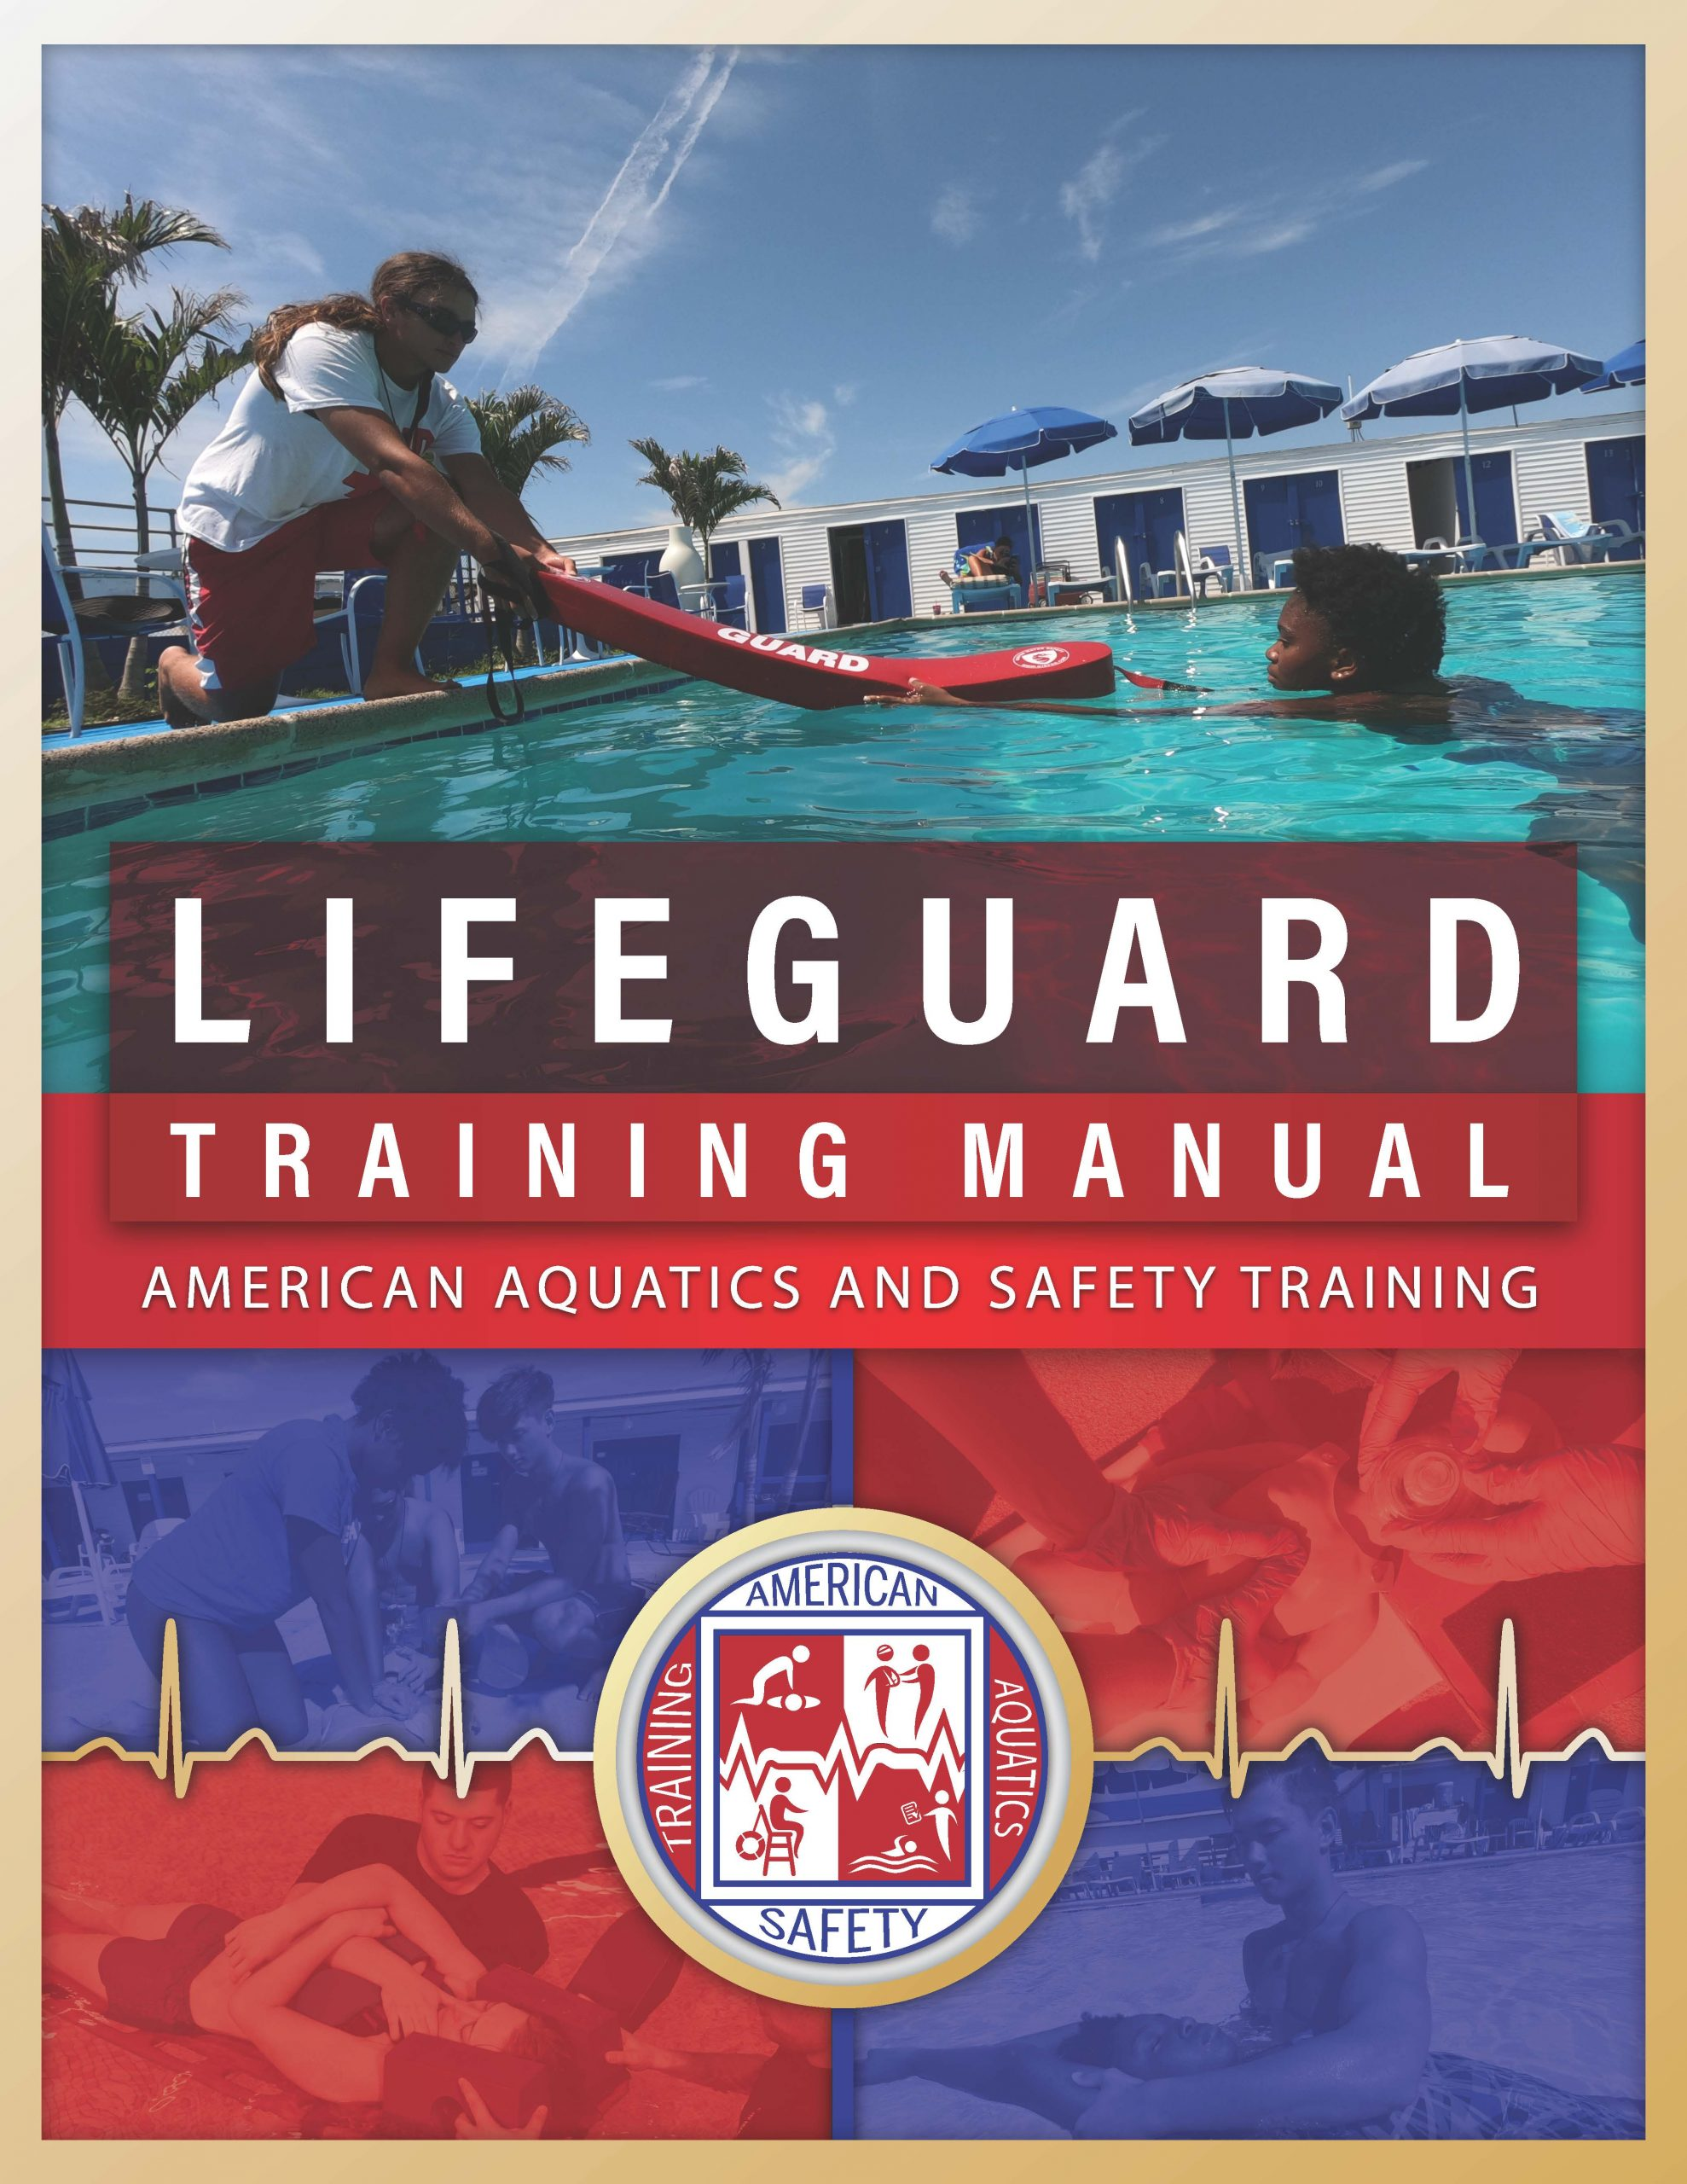 redcross-lifeguard-manual